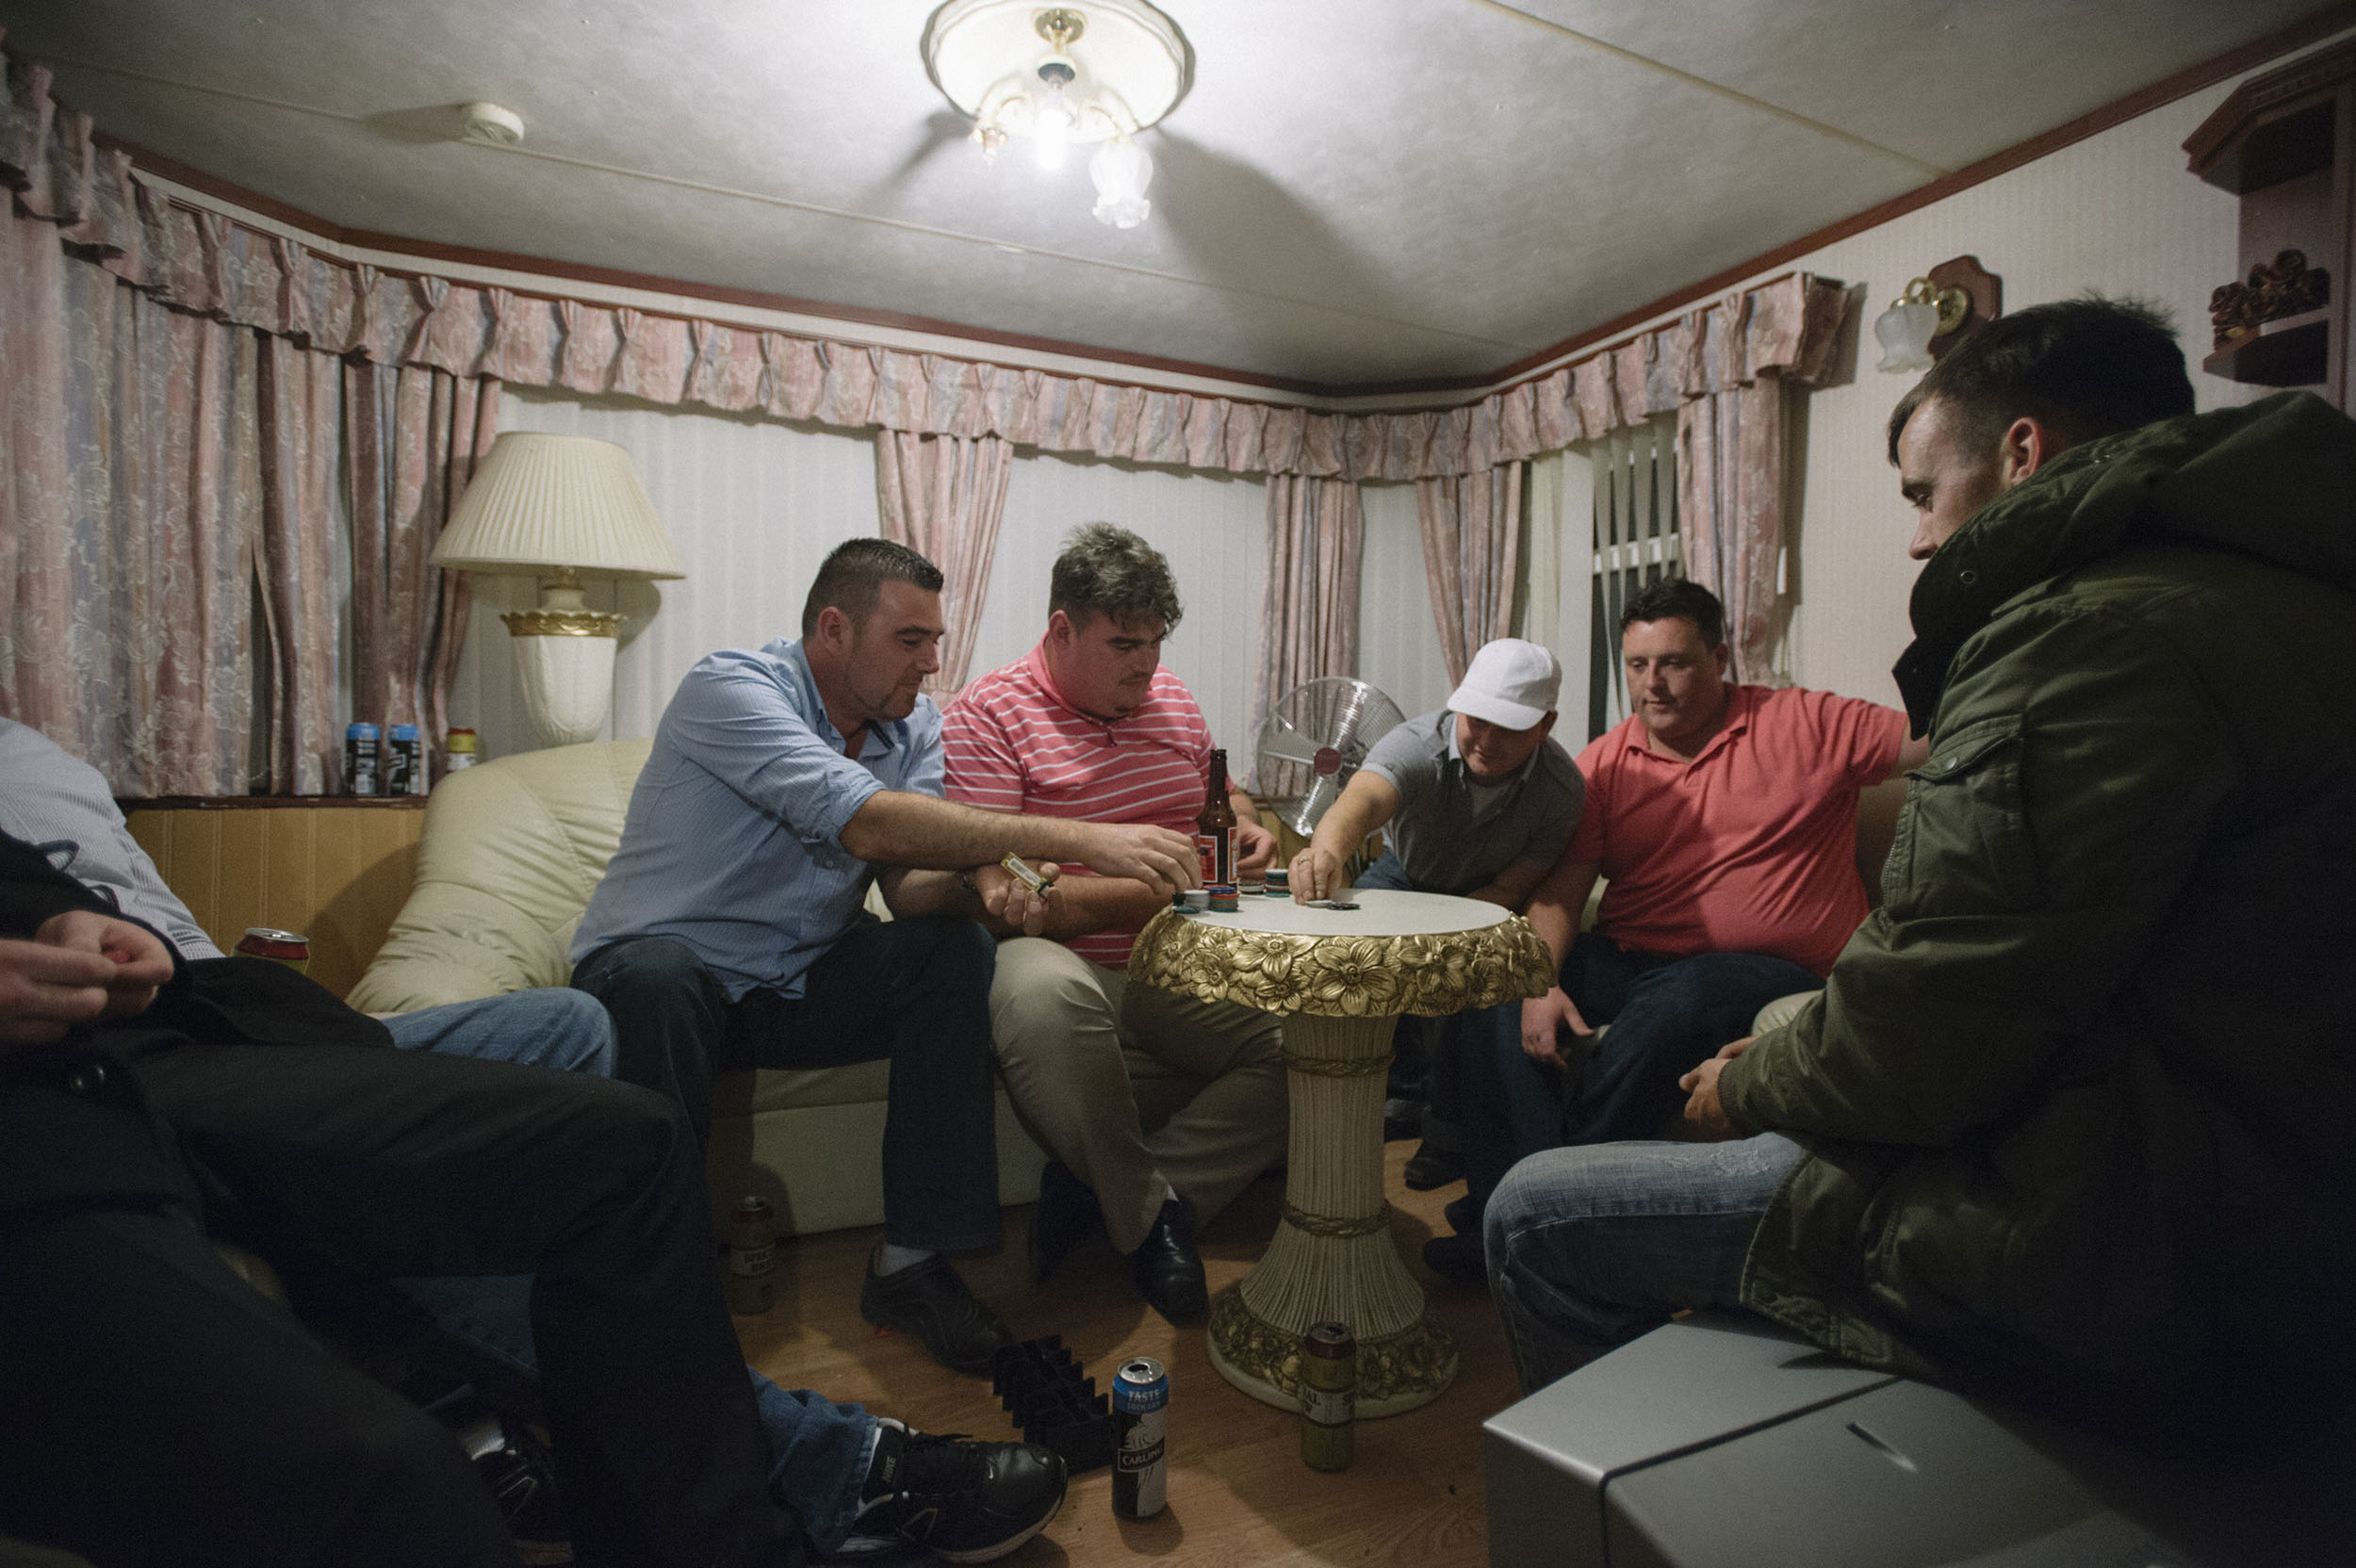 A group of Dale Farm residents celebrate a temporary court injunction against eviction with a game of poker.